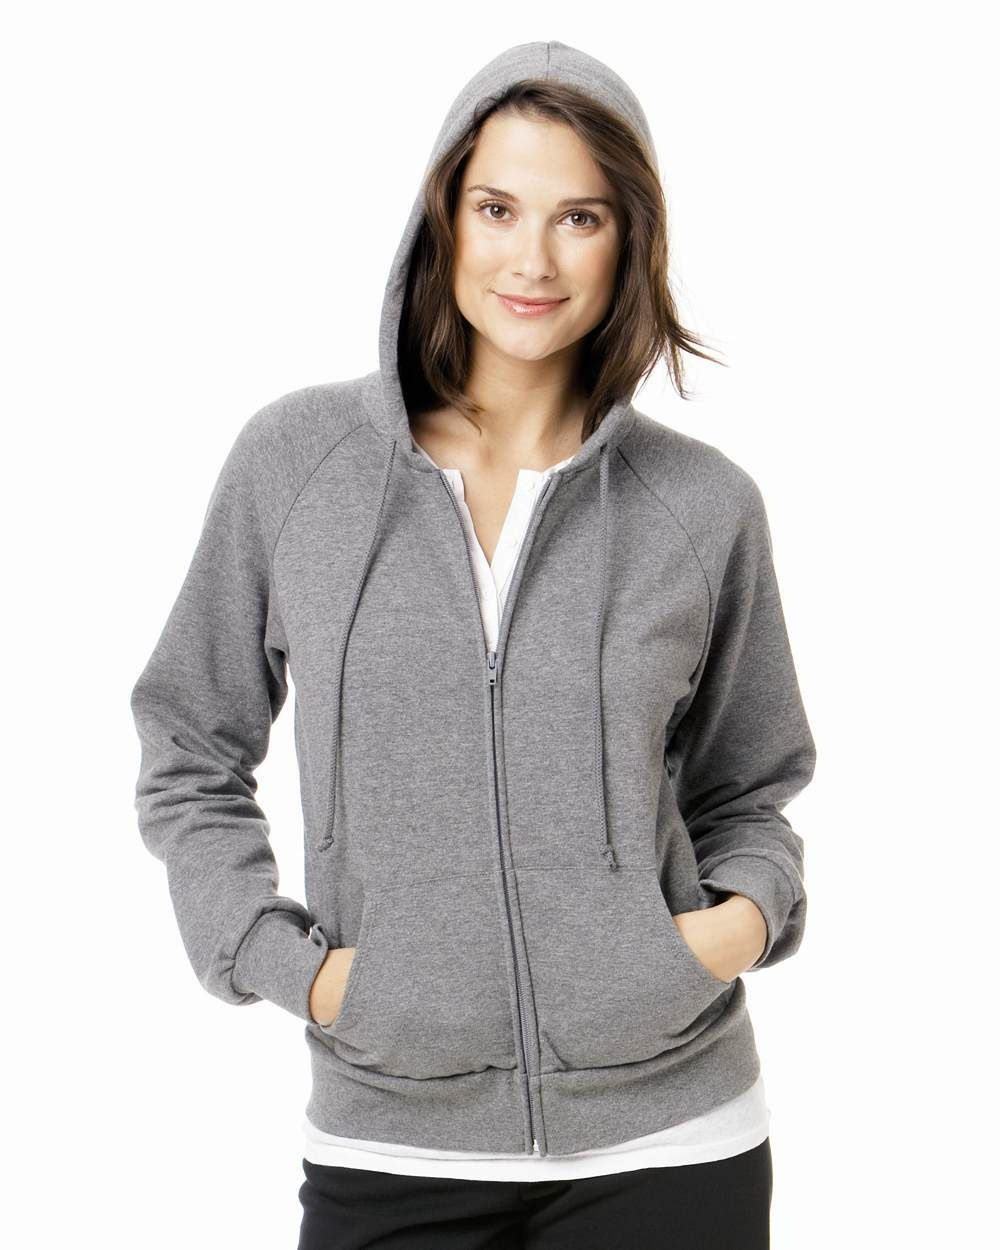 Bella Ladies Hoody Sweatshirt Raglan Full Zip Hooded Sweat Shirt ...